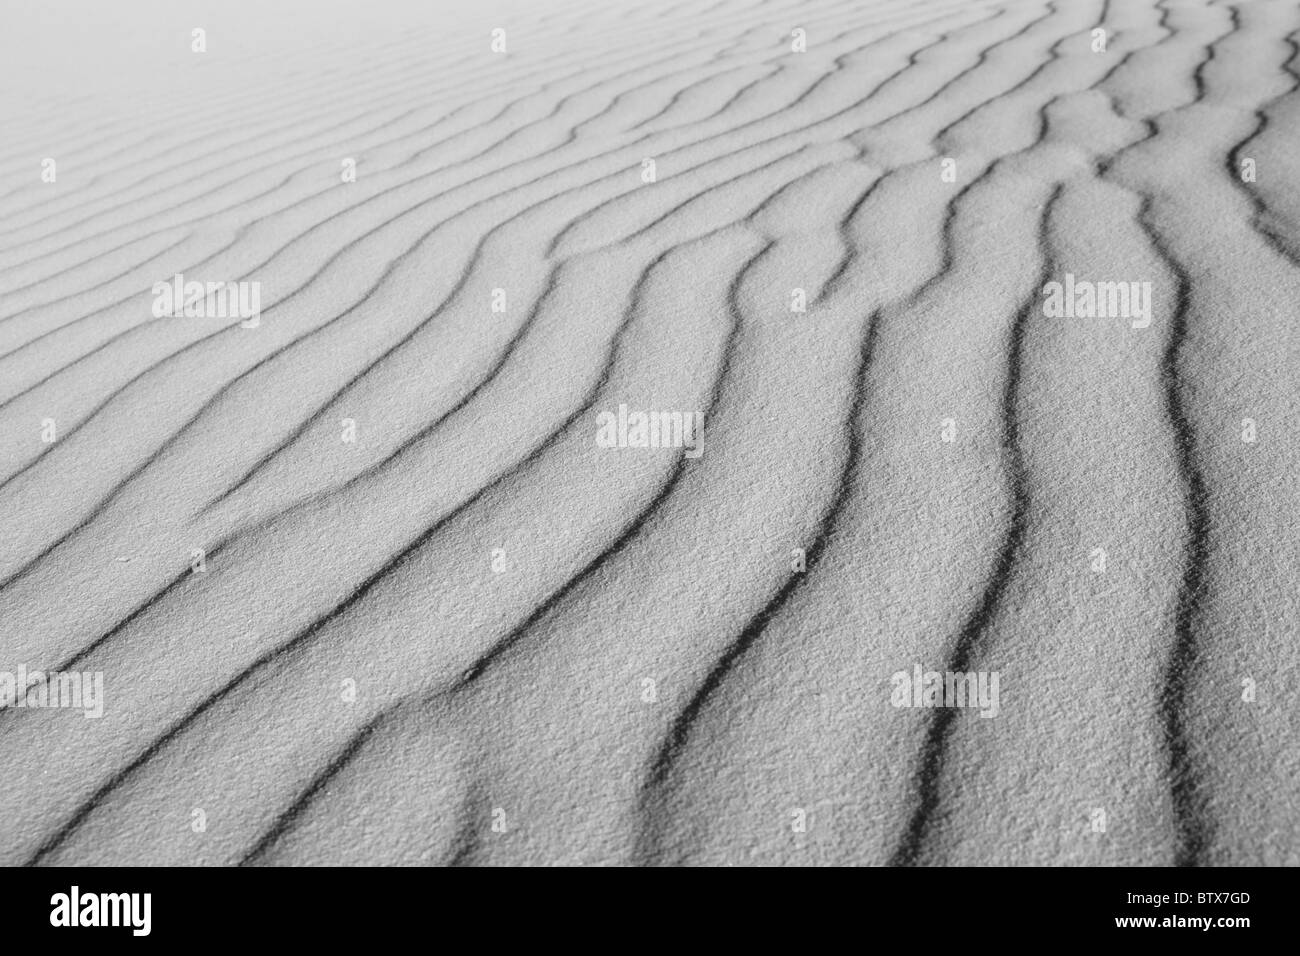 Sand Waves Desert Abstract Black and White background texture - Stock Image